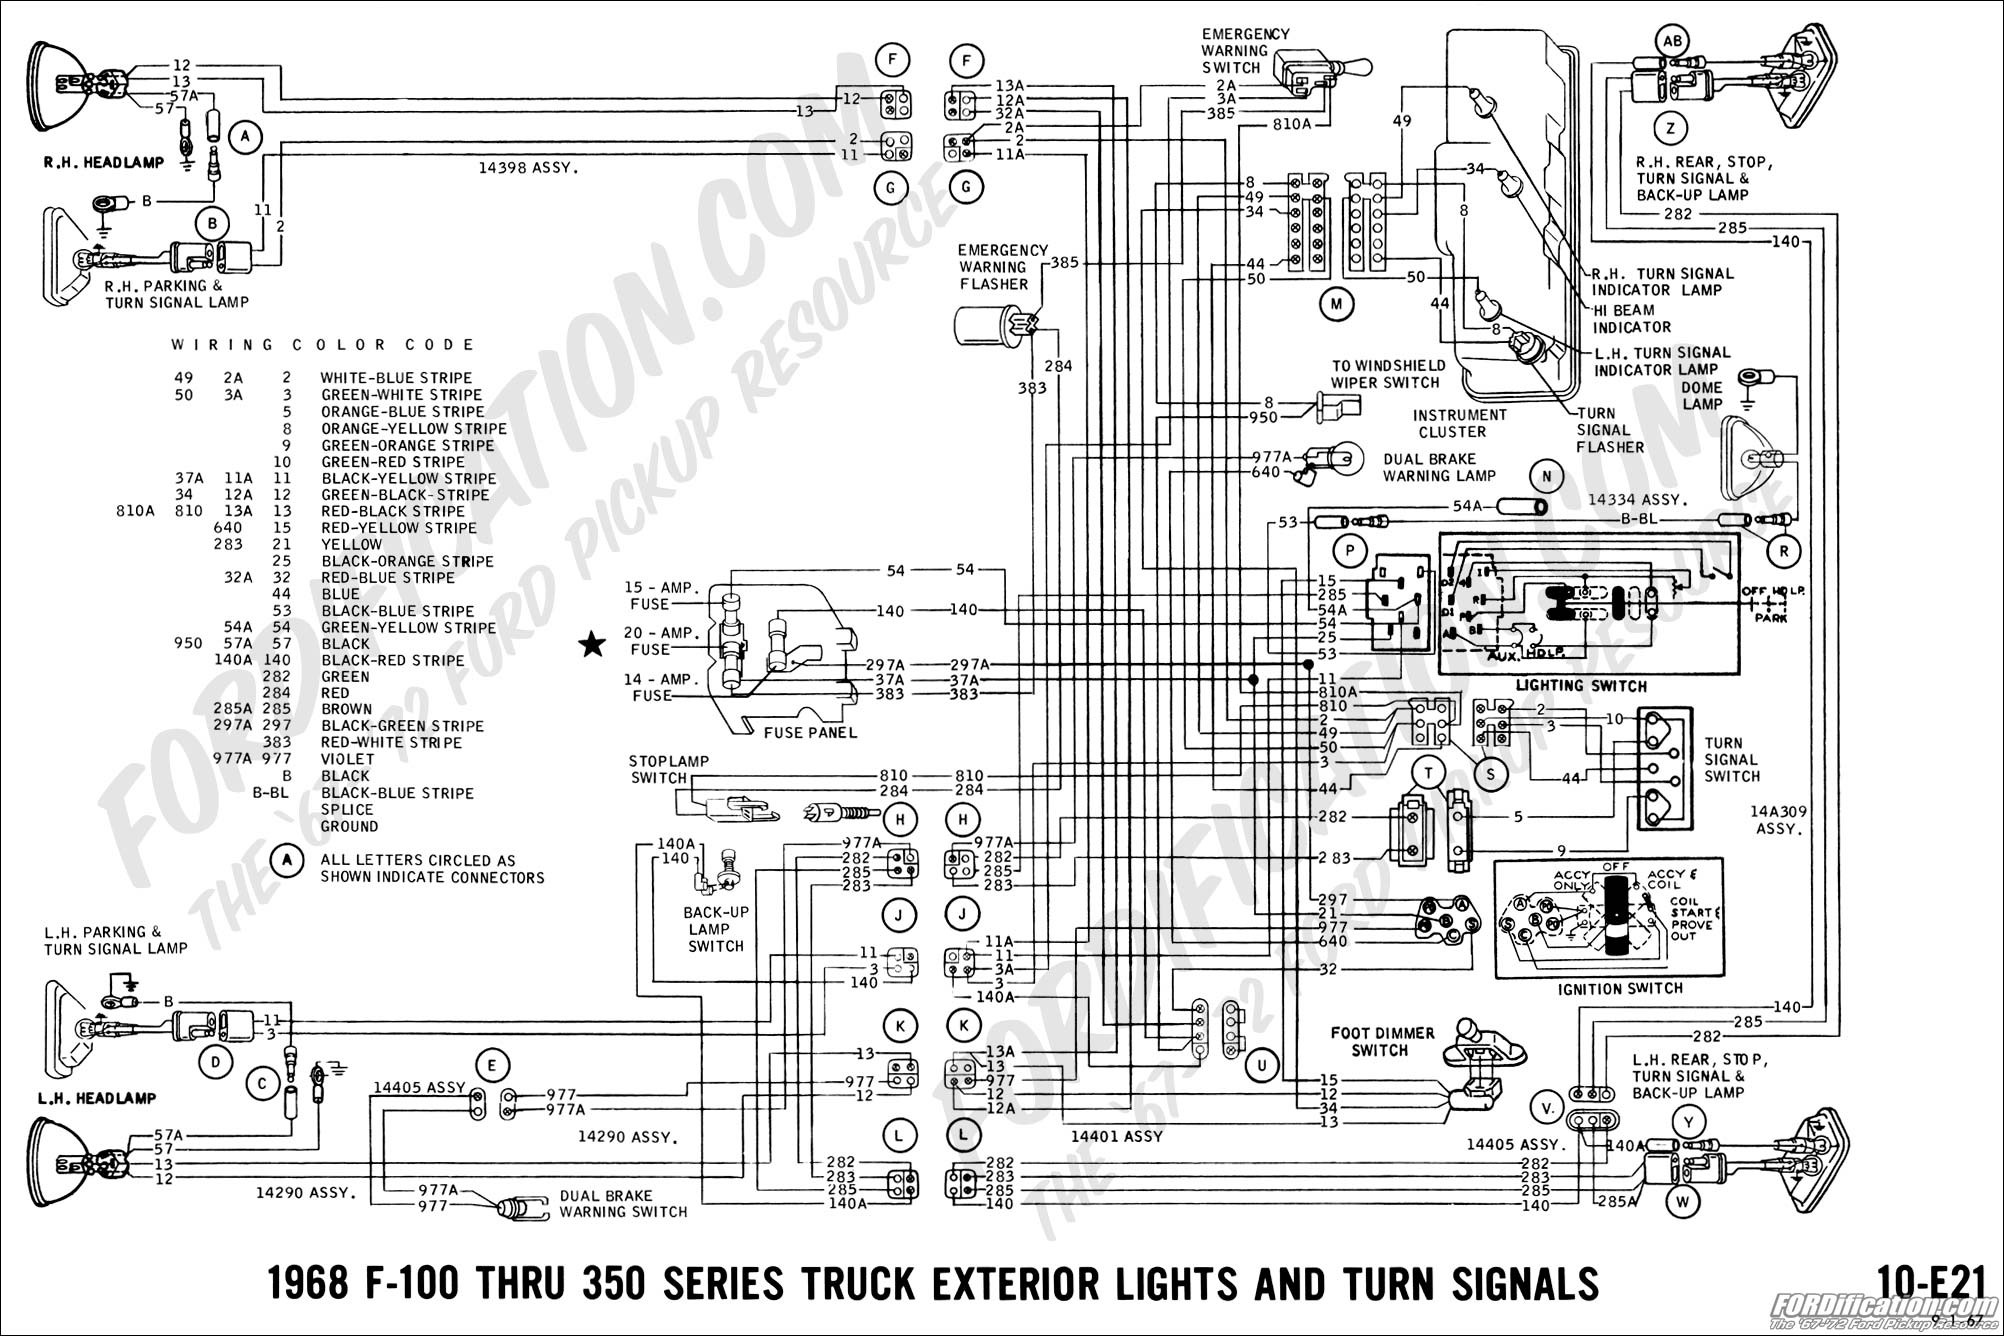 Turn Signal Switch Diagram ford Truck Technical Drawings and Schematics Section H Wiring Of Turn Signal Switch Diagram